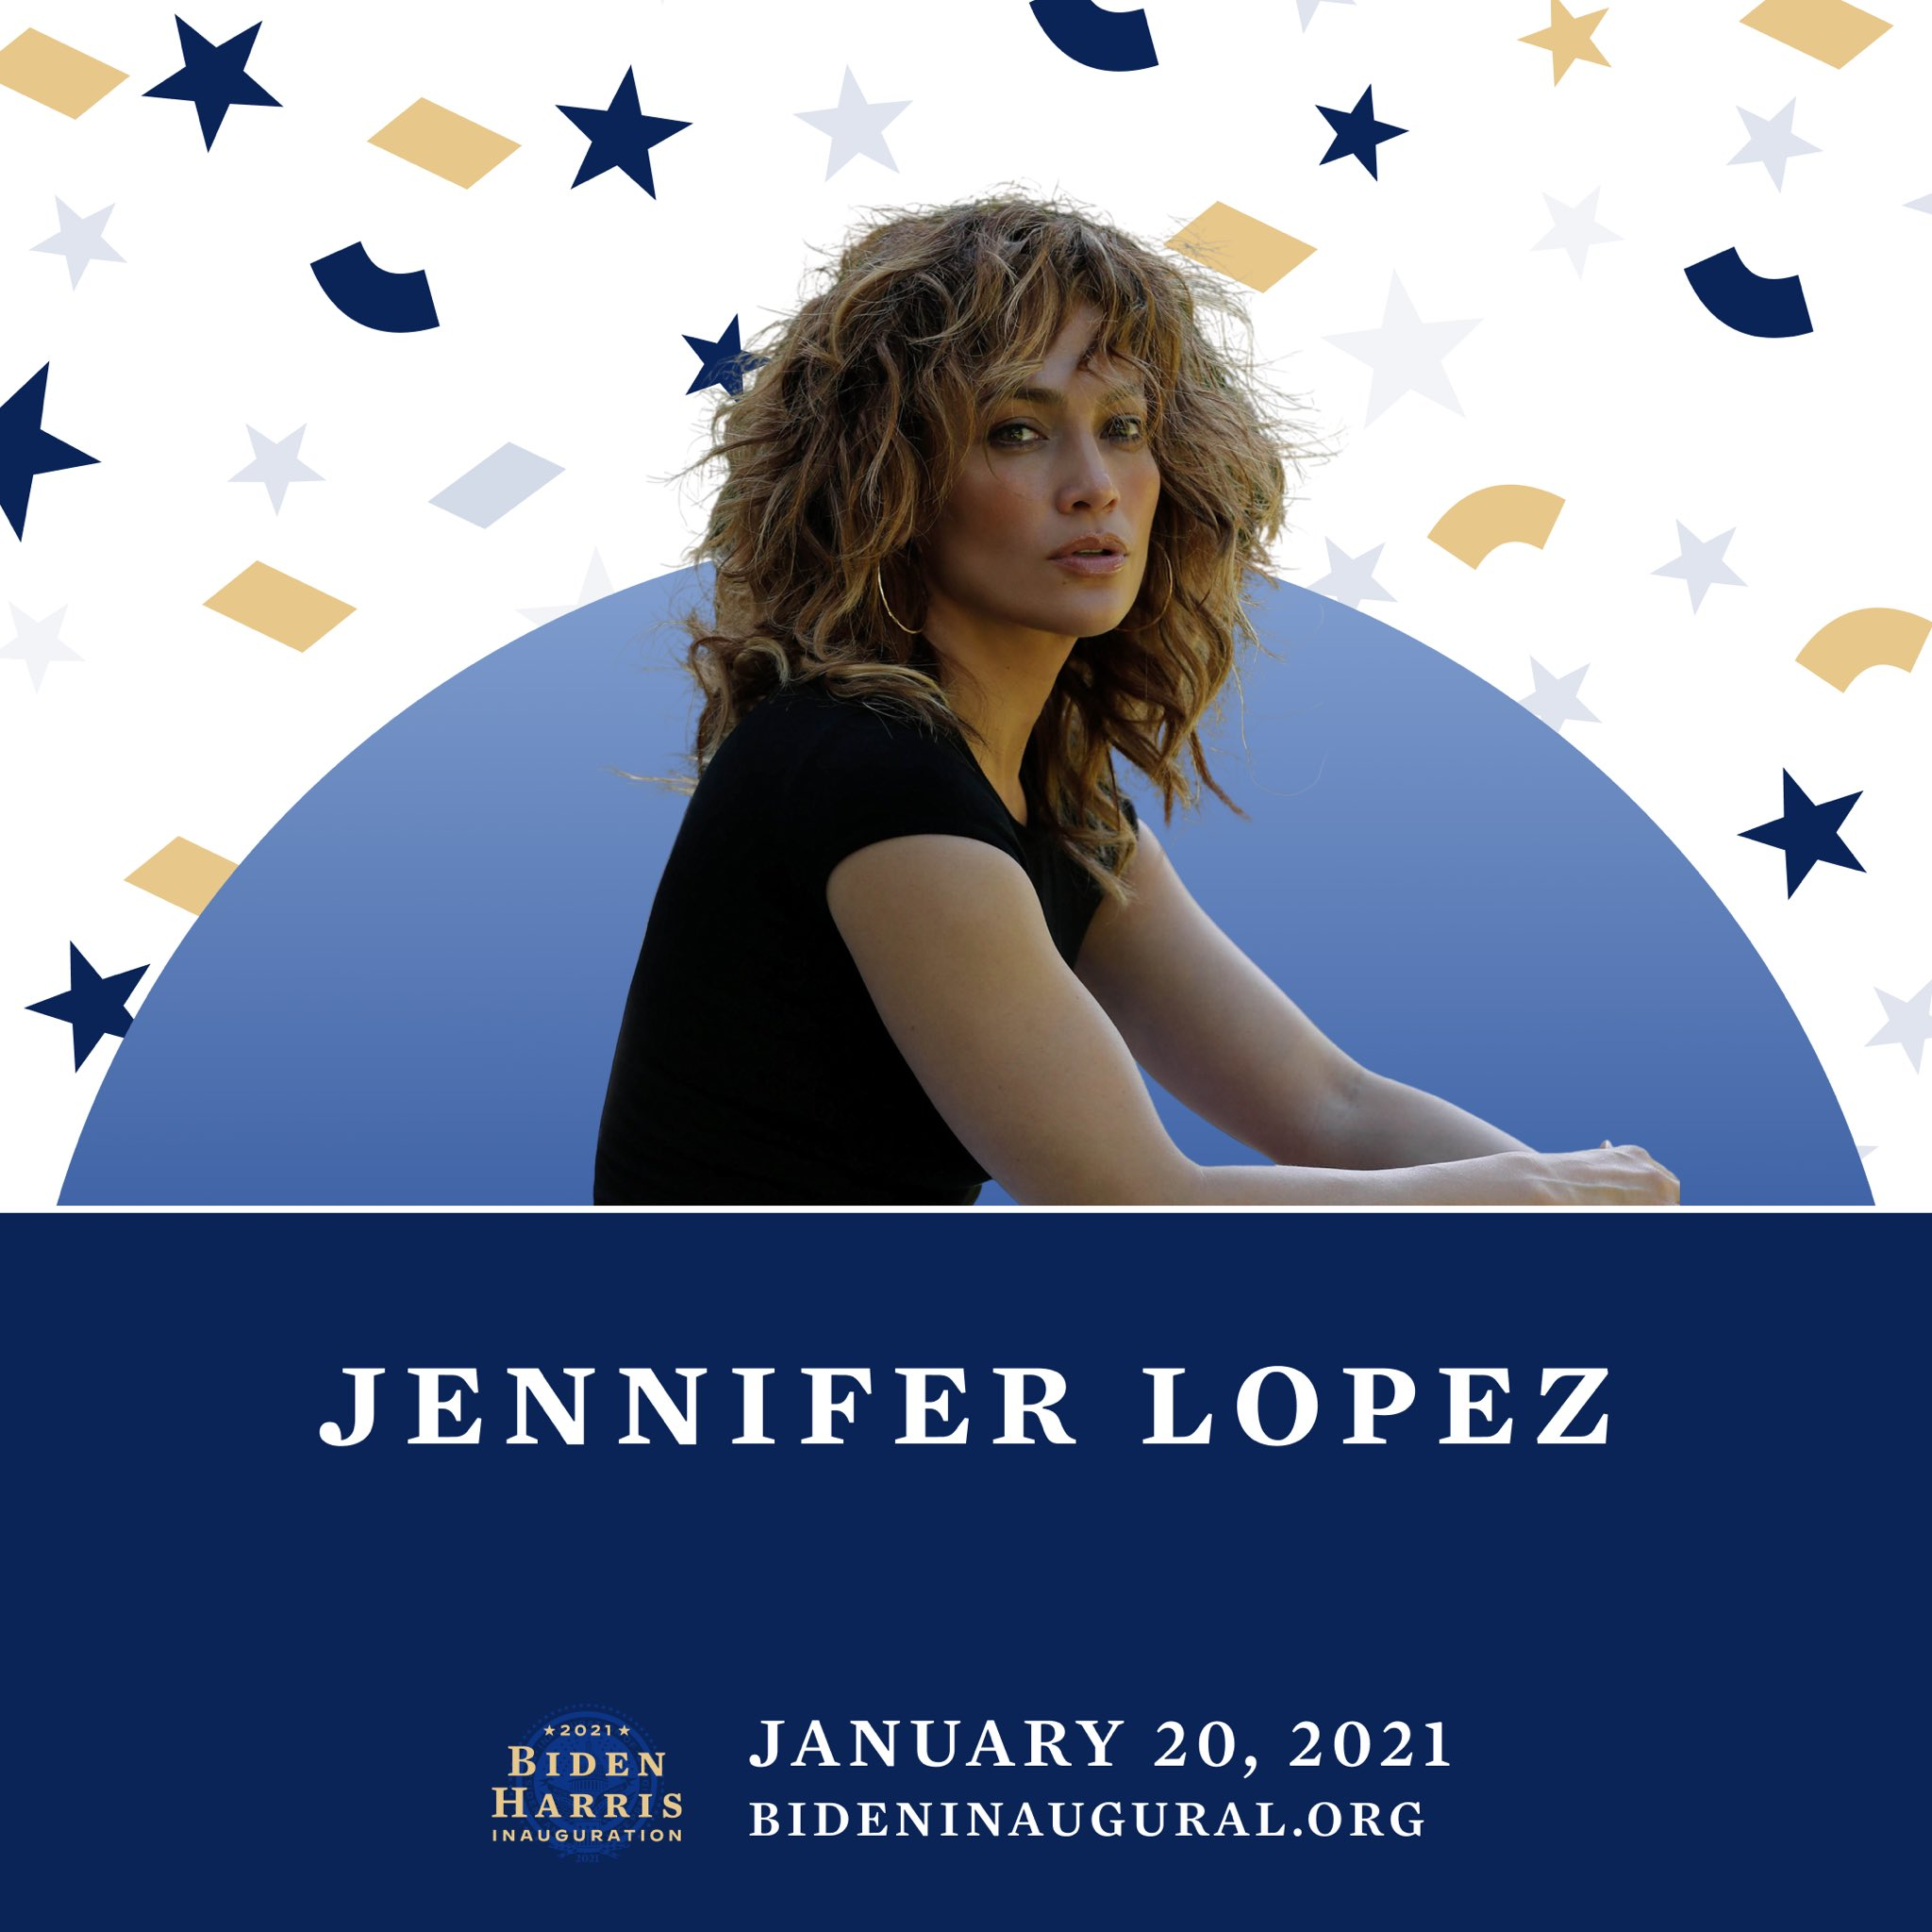 Jennifer-Lopez-Biden-Inauguration-Jan-20